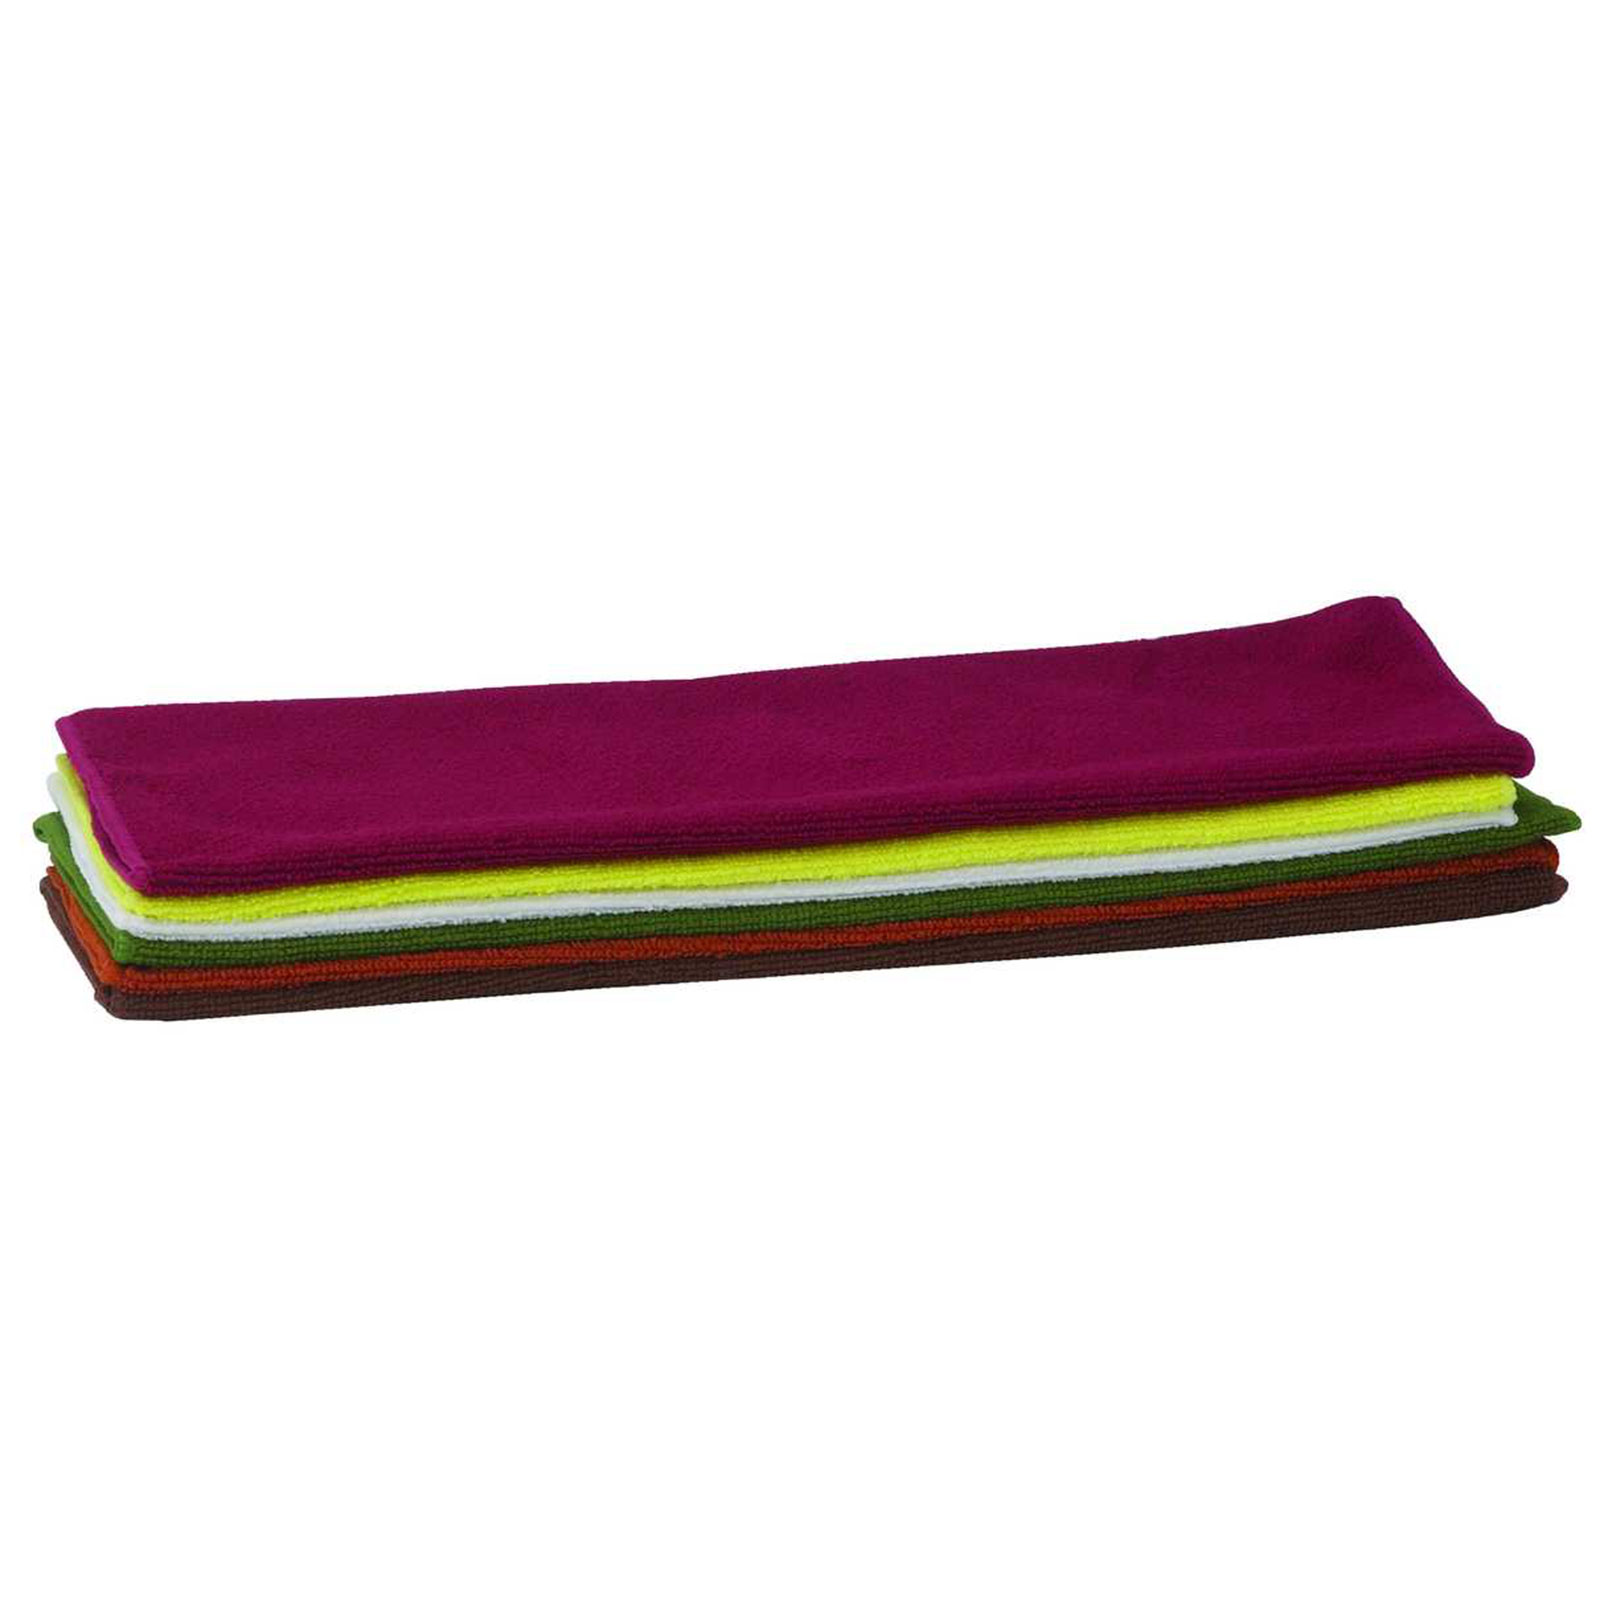 Winco BTM-16AC towel / cloth / mitts, microfiber